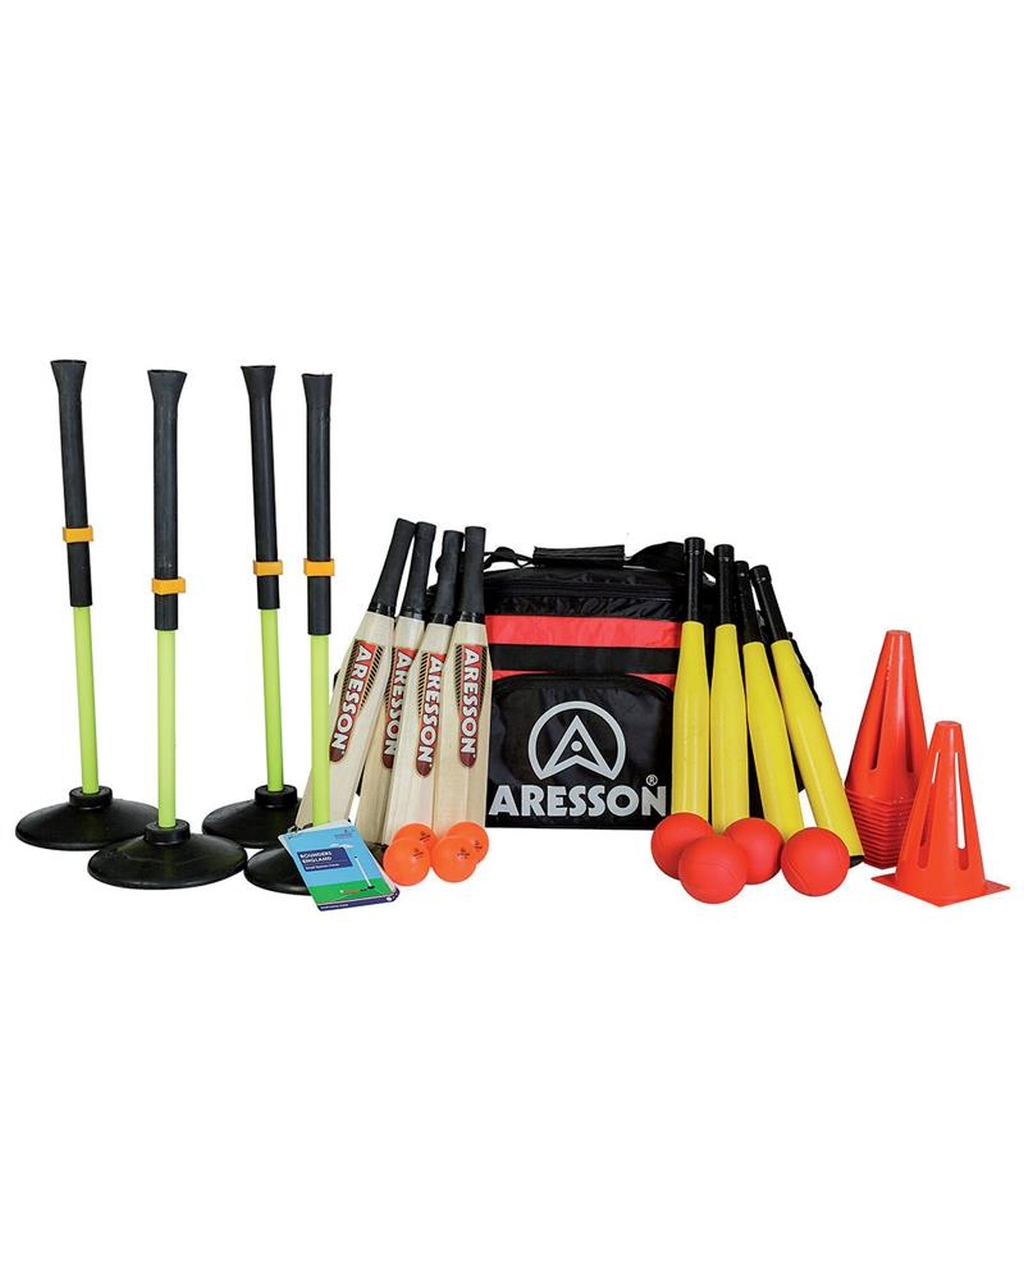 Aresson Primary Starter Set